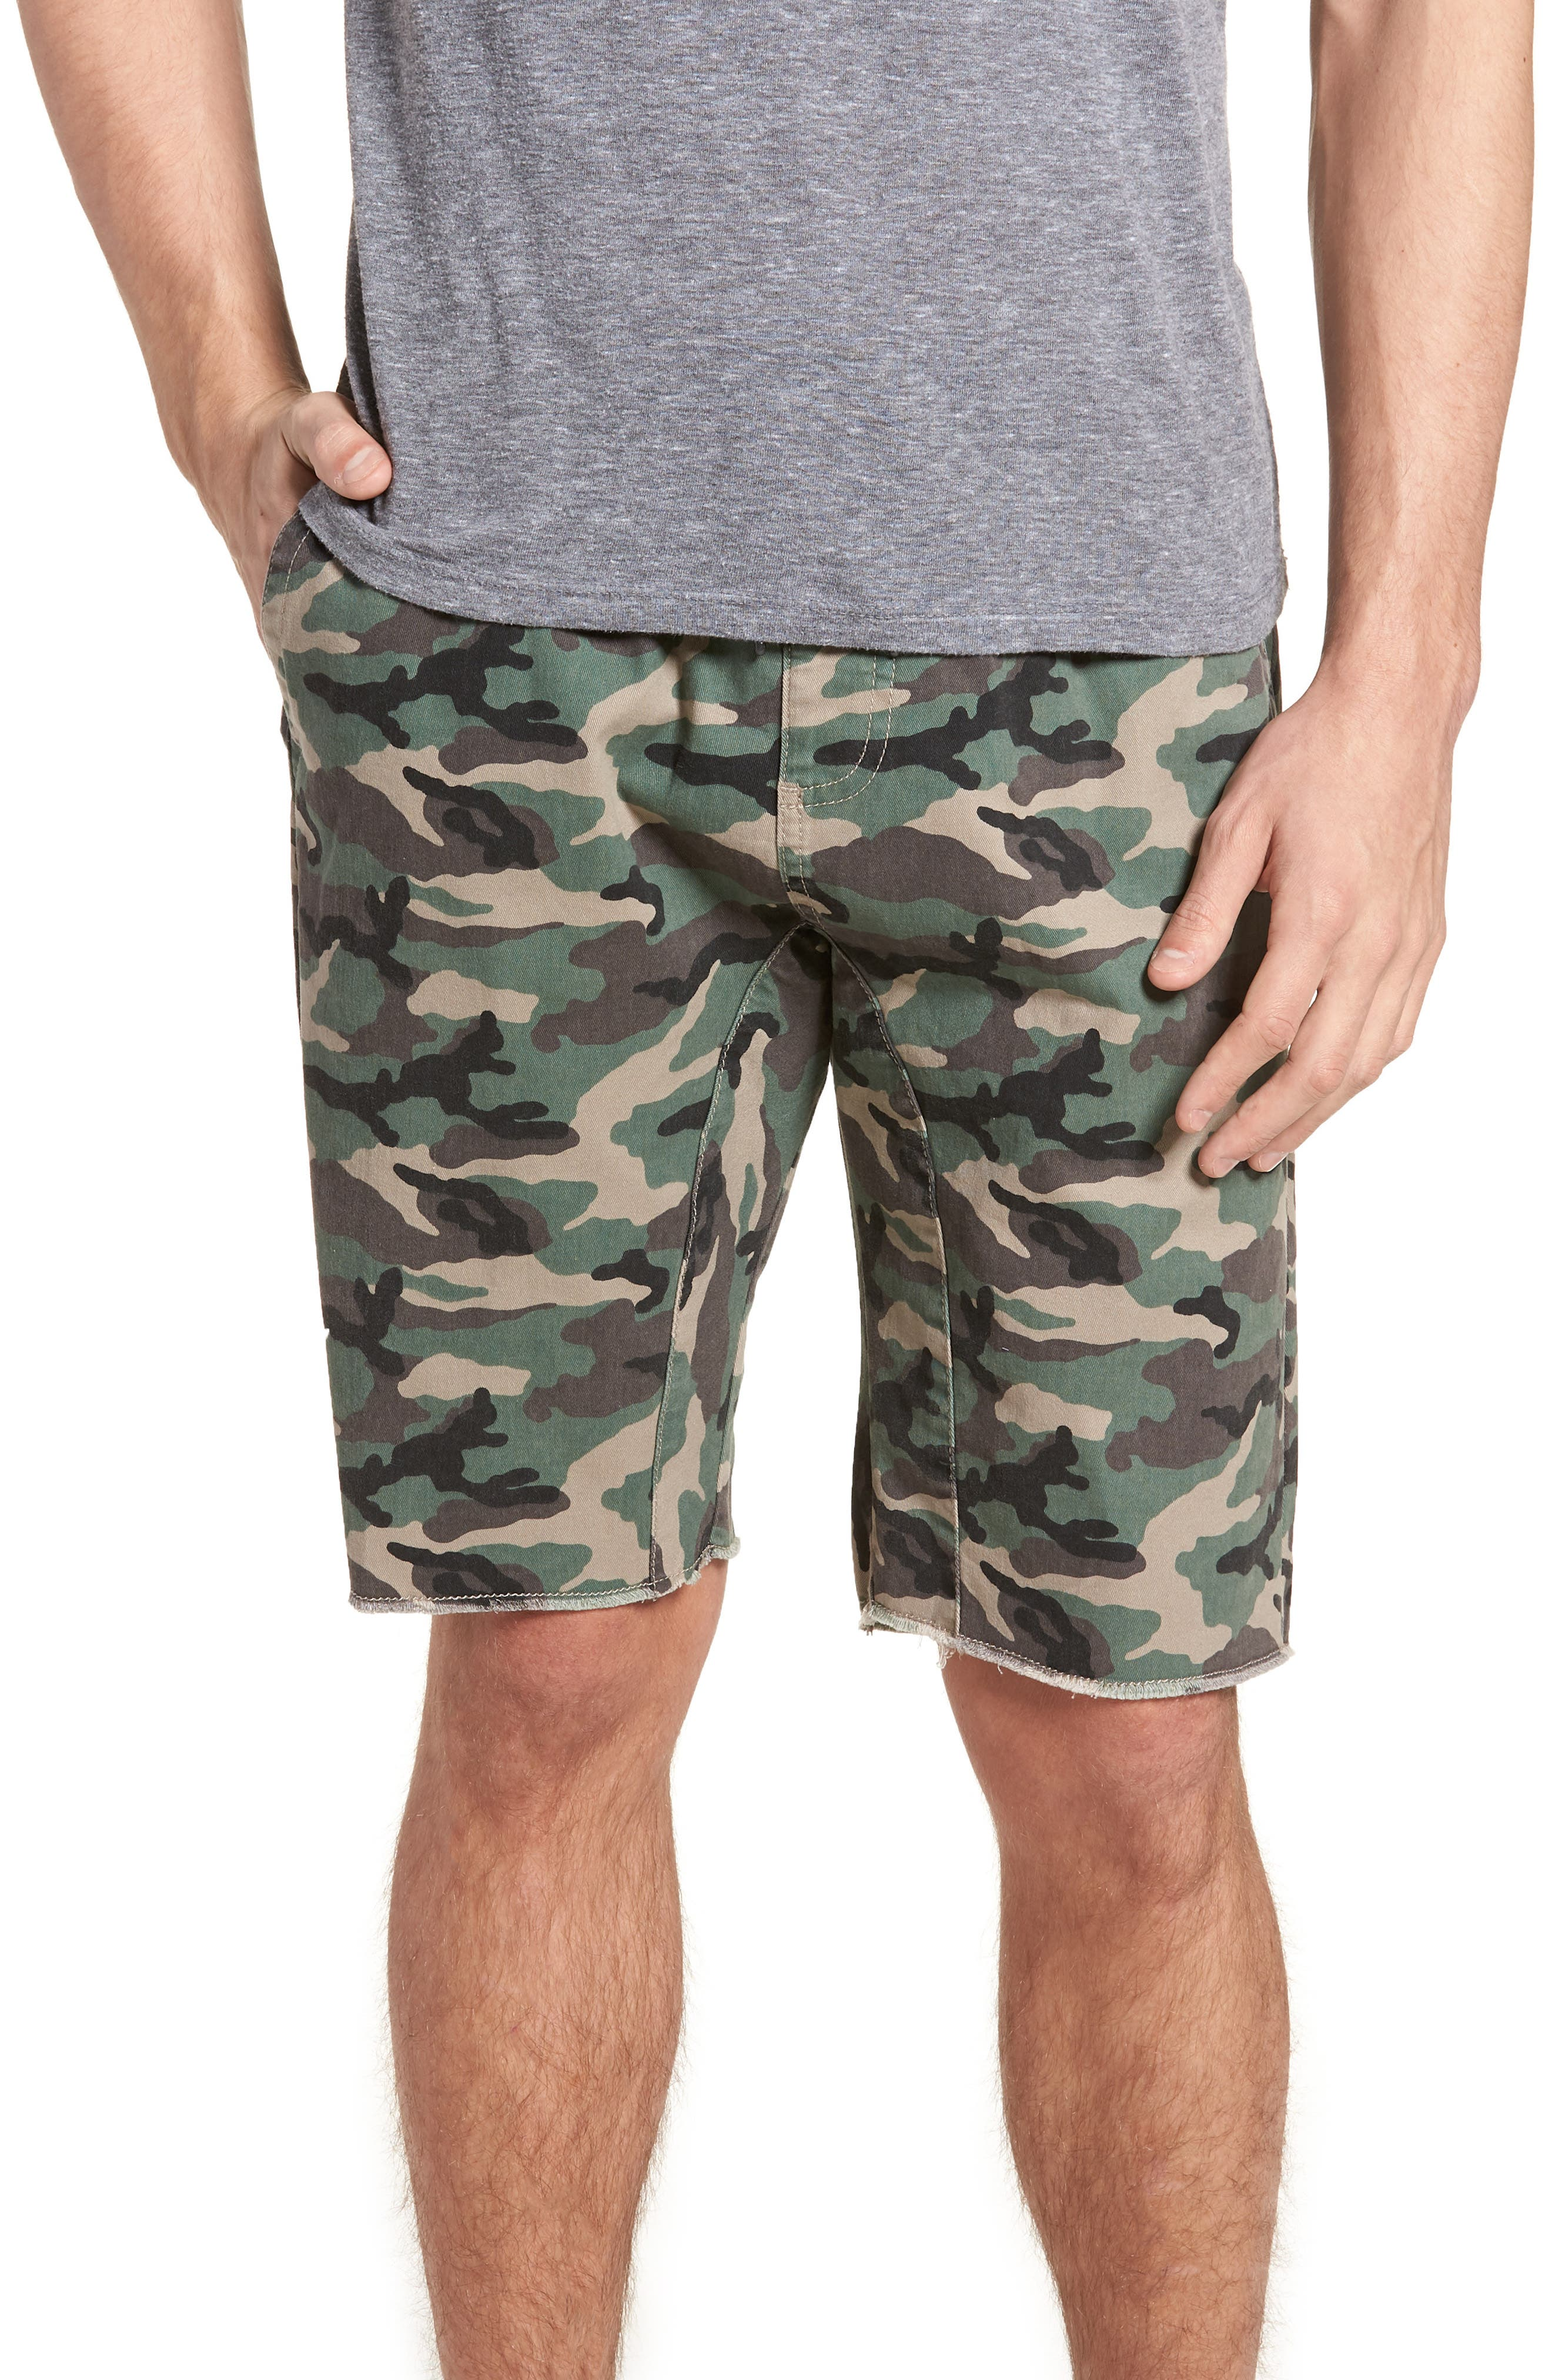 Camo Print Cutoff Twill Shorts,                             Main thumbnail 1, color,                             210